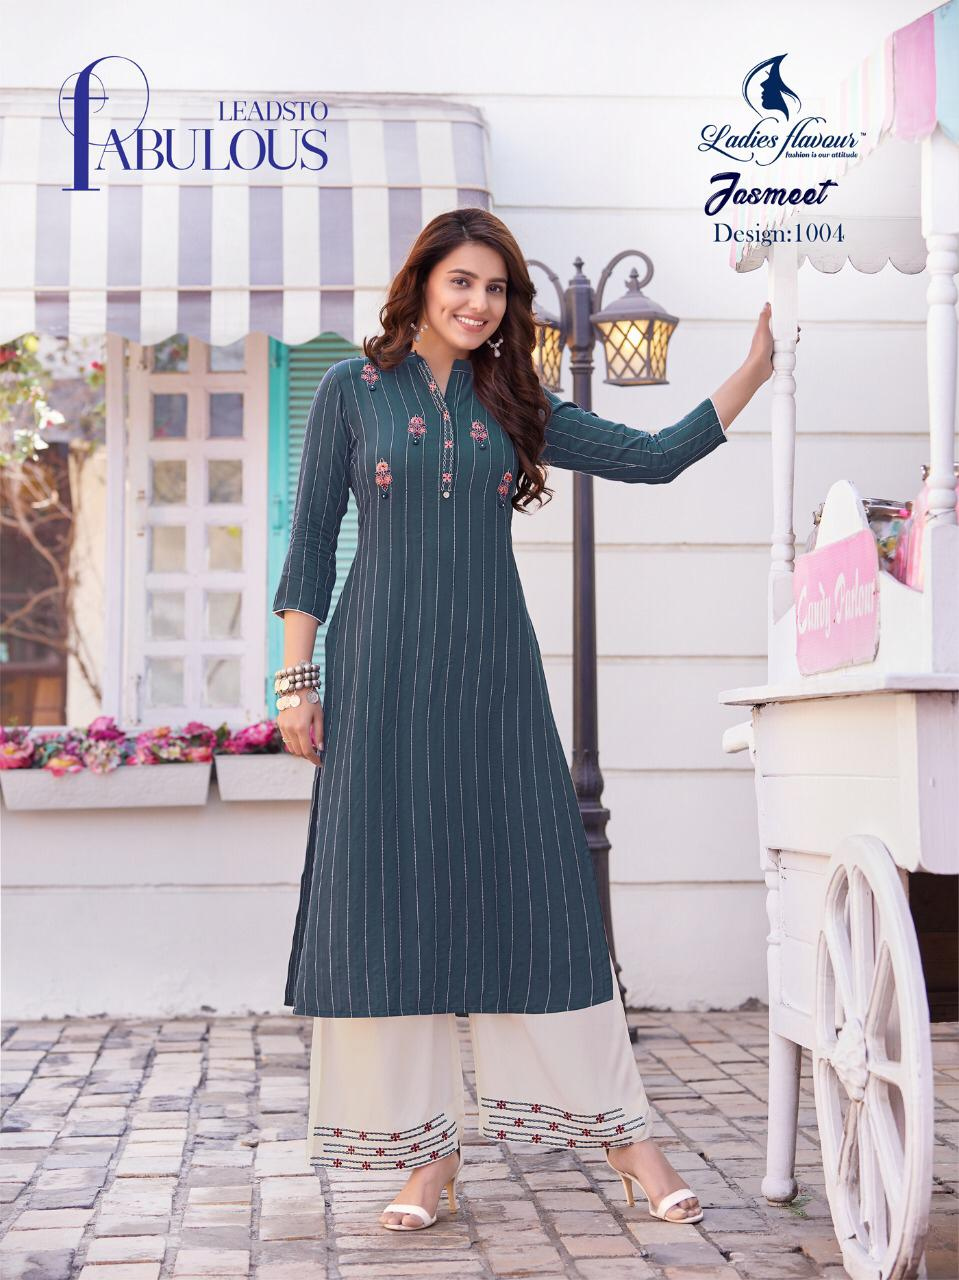 Ladies Flavour Jasmeet collection 5